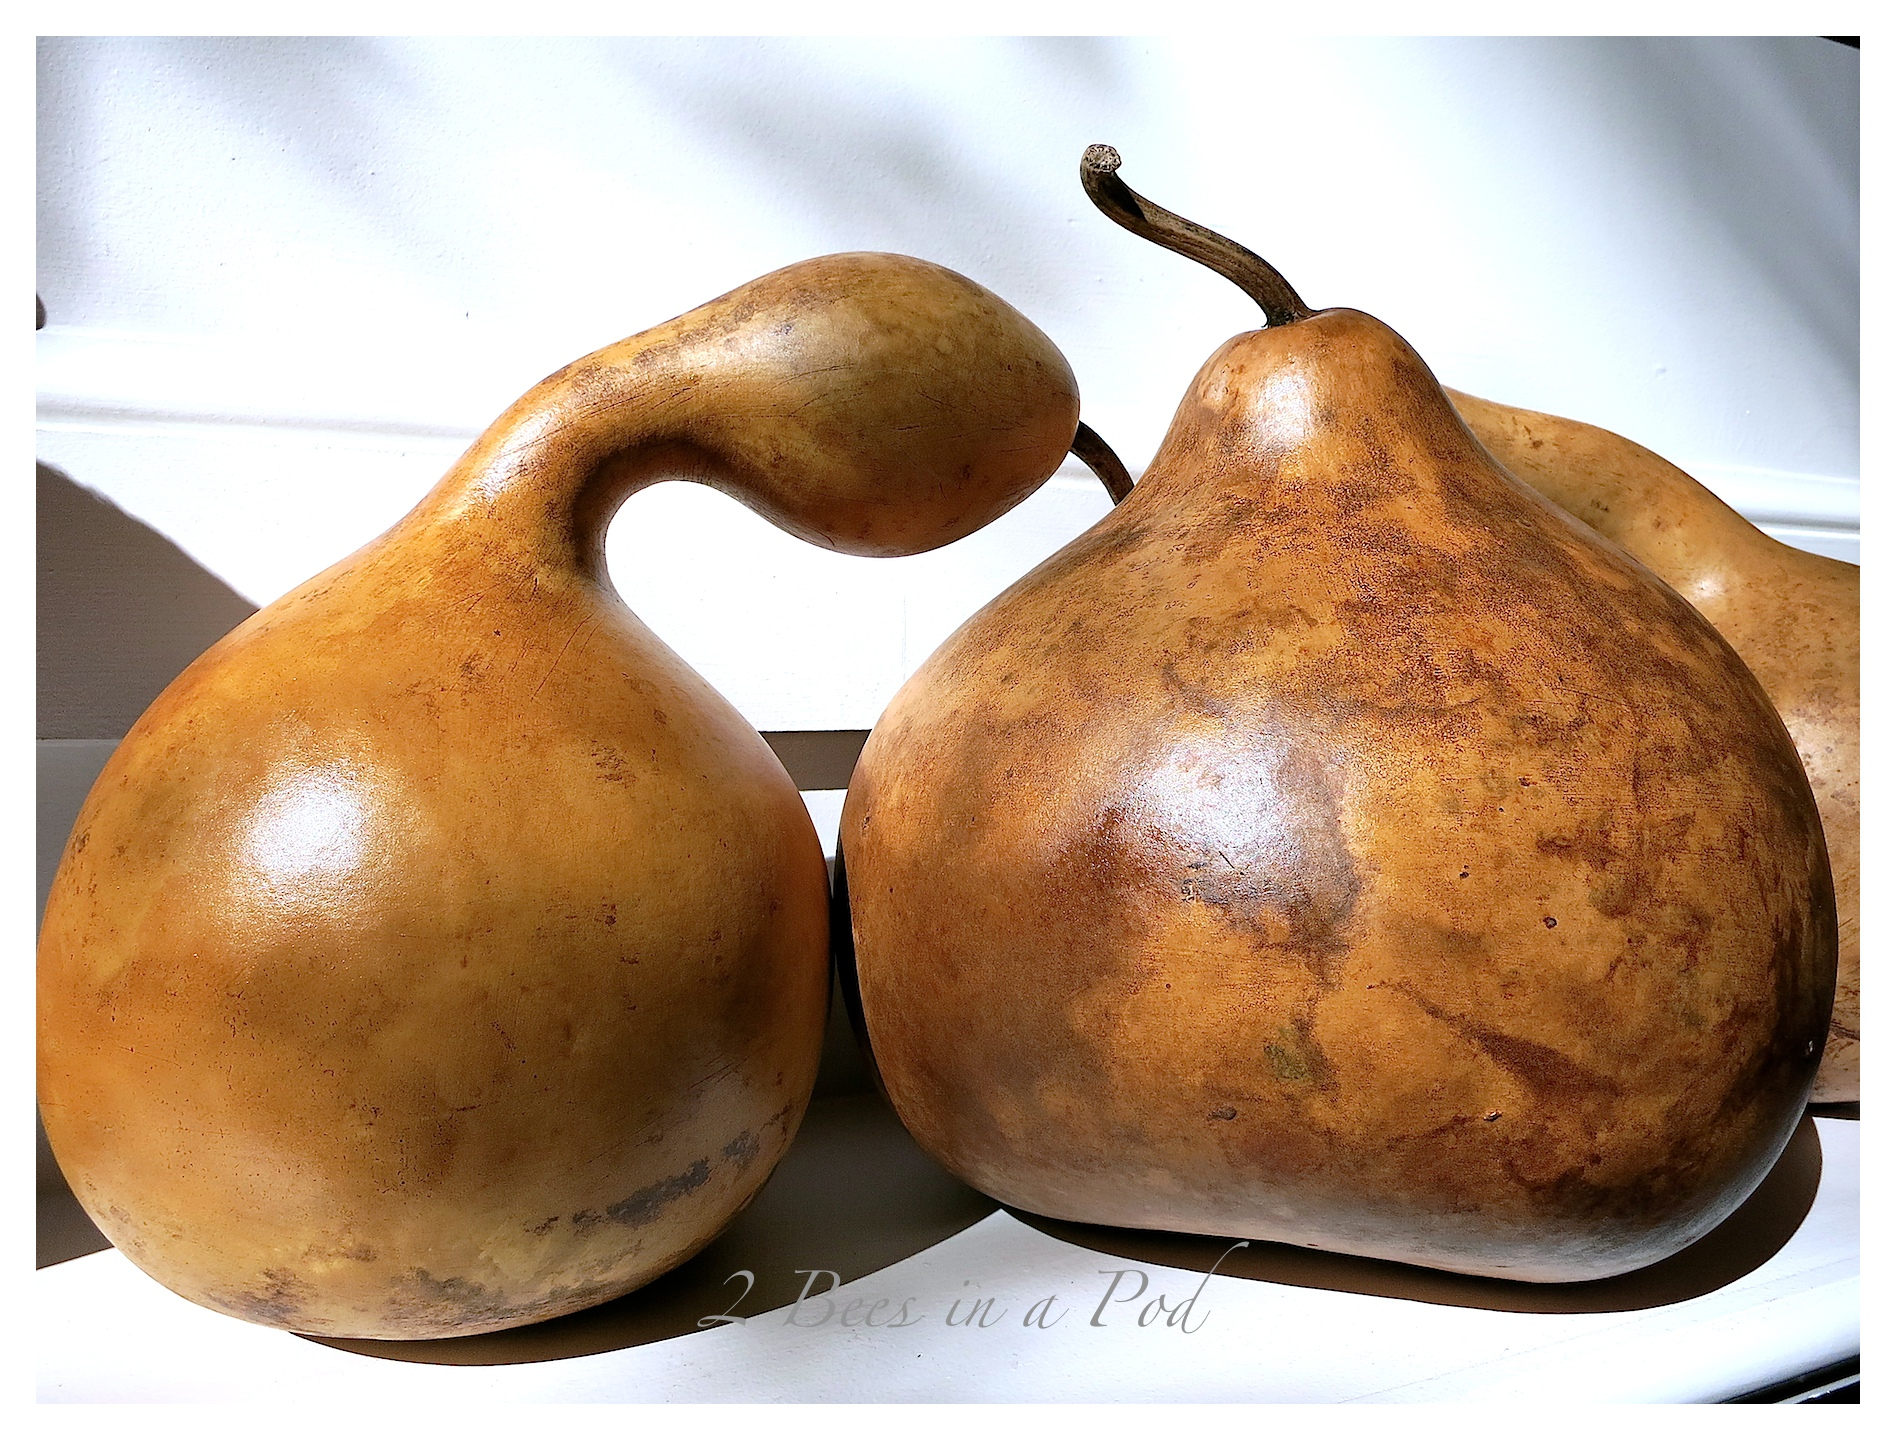 These stained gourds are perfect Fall decor. The stain gives them so much more character.